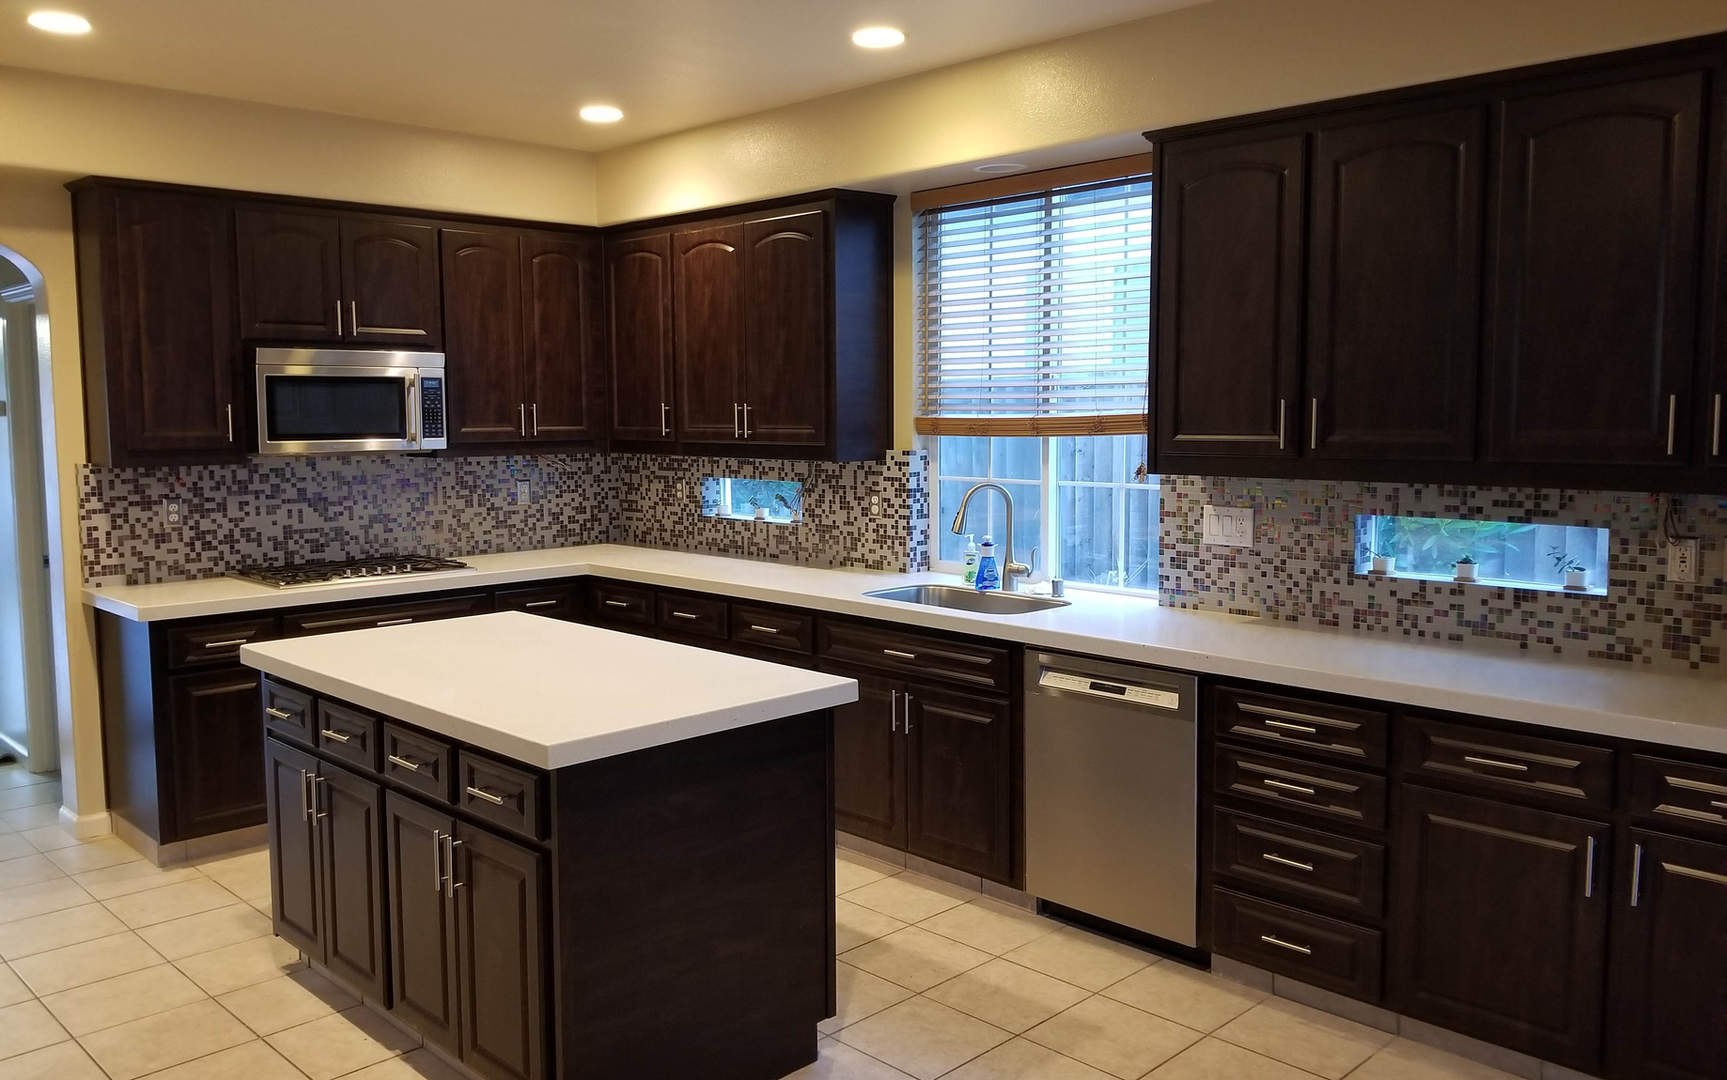 Cabinet Refacing and Countertops